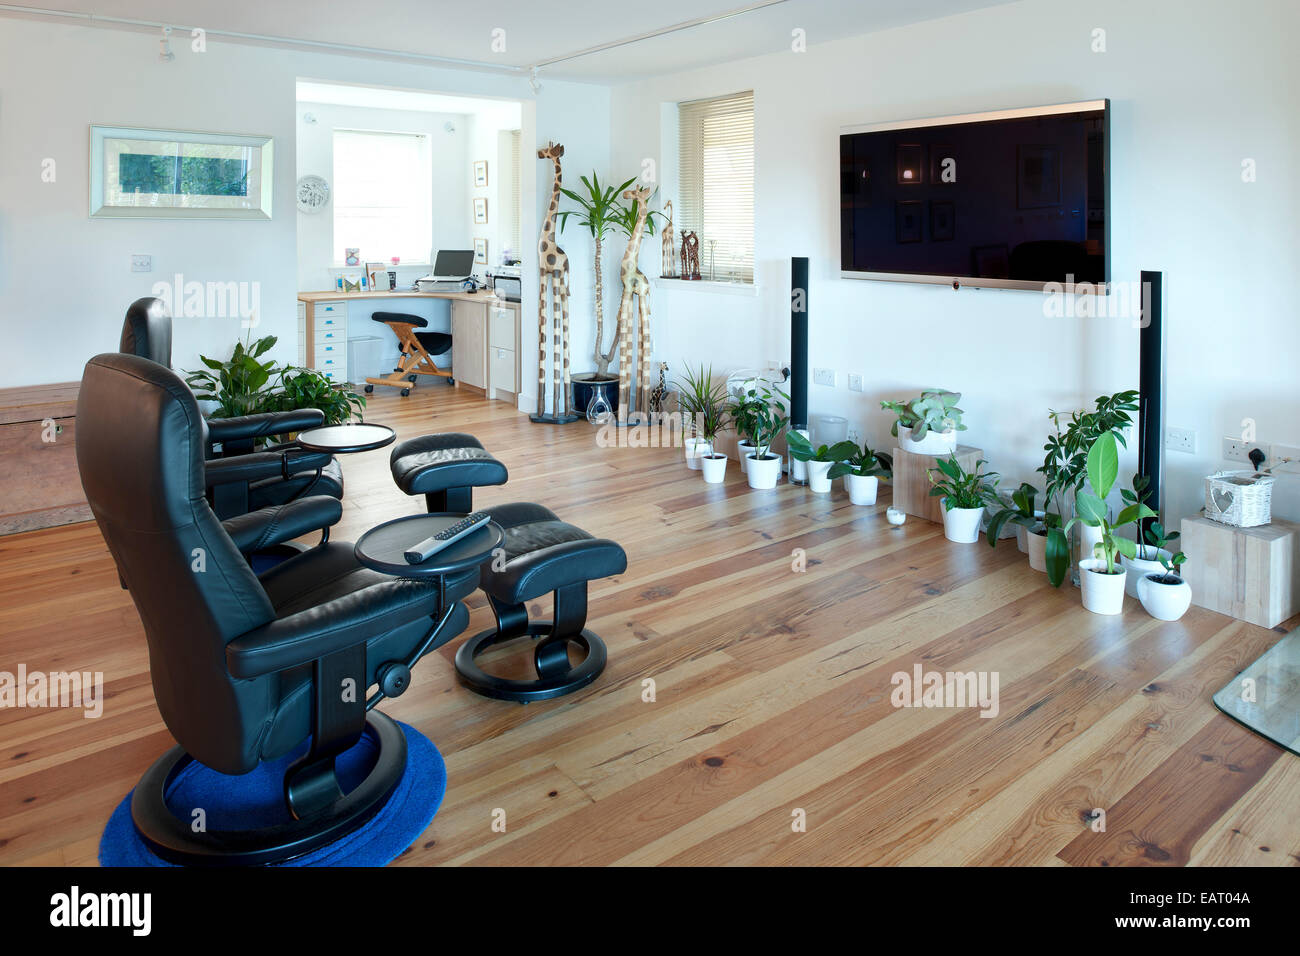 Home entertainment room, Dalkeith, Midlothian, Scotland, UK - Stock Image